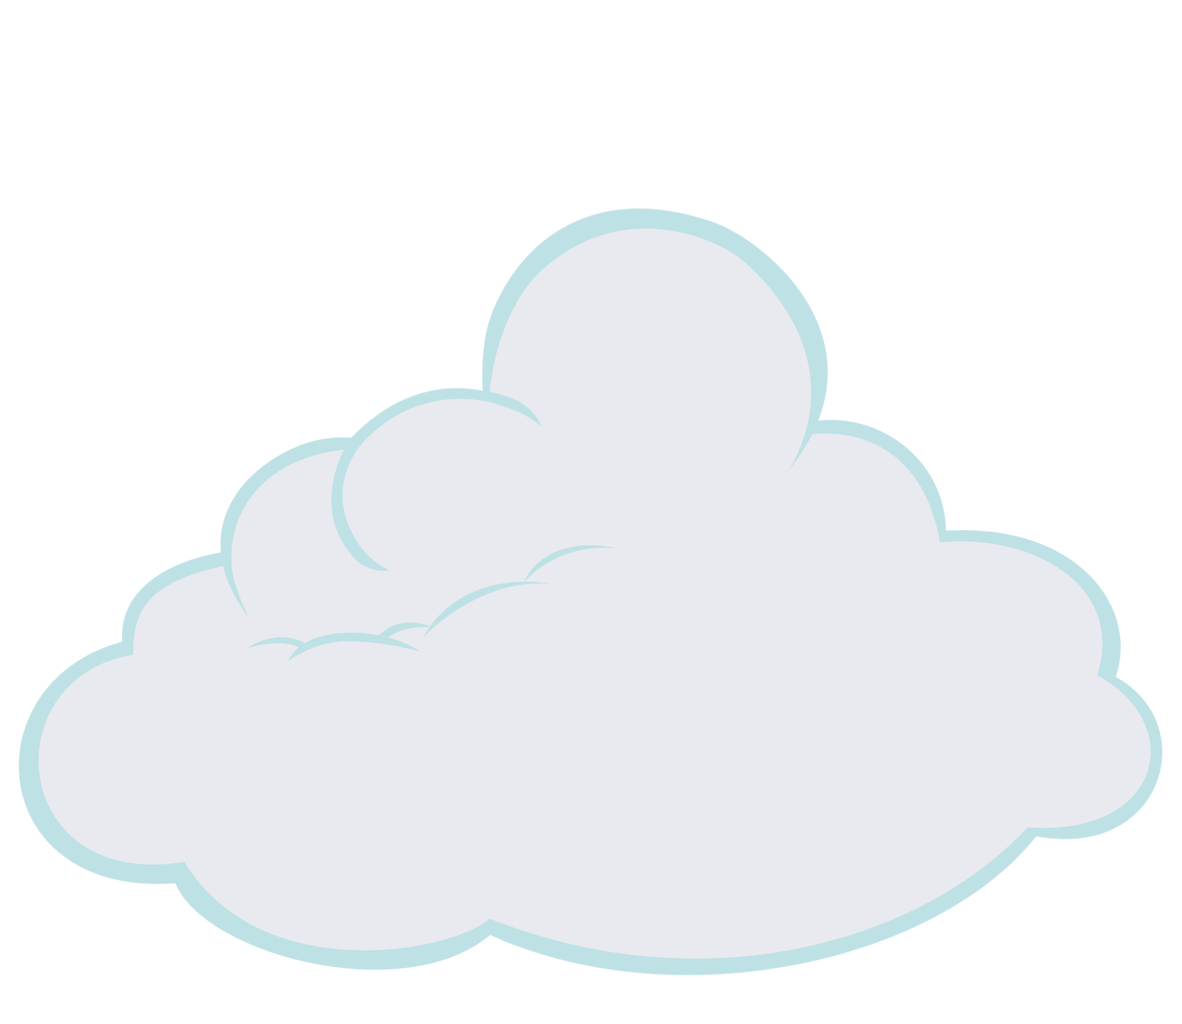 Clouds cartoon png. Collection of free clouding